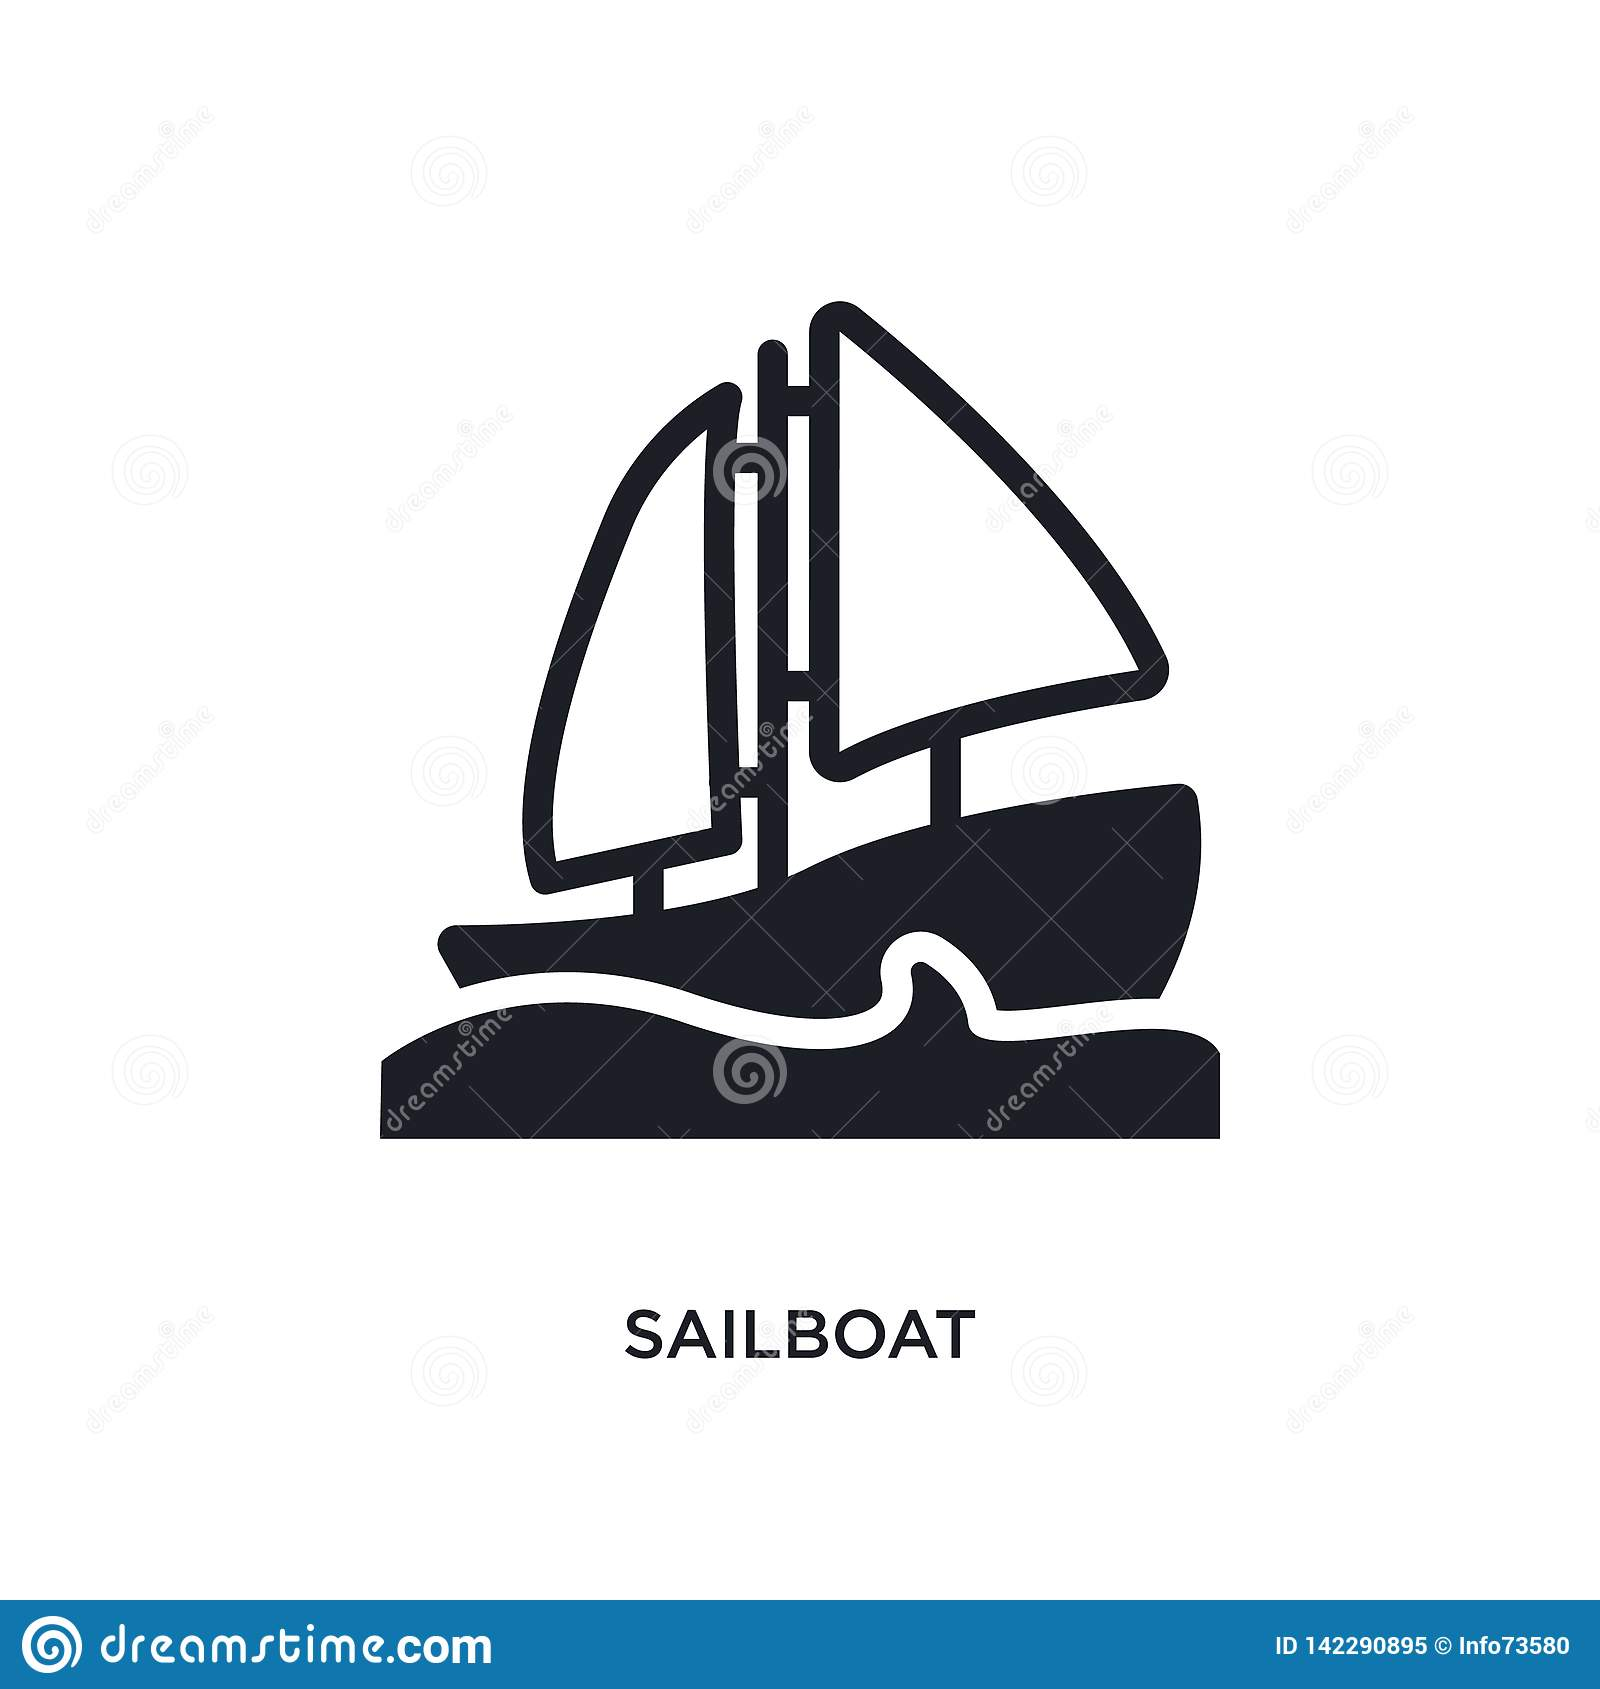 sailboat isolated icon. simple element illustration from nautical concept icons. sailboat editable logo sign symbol design on